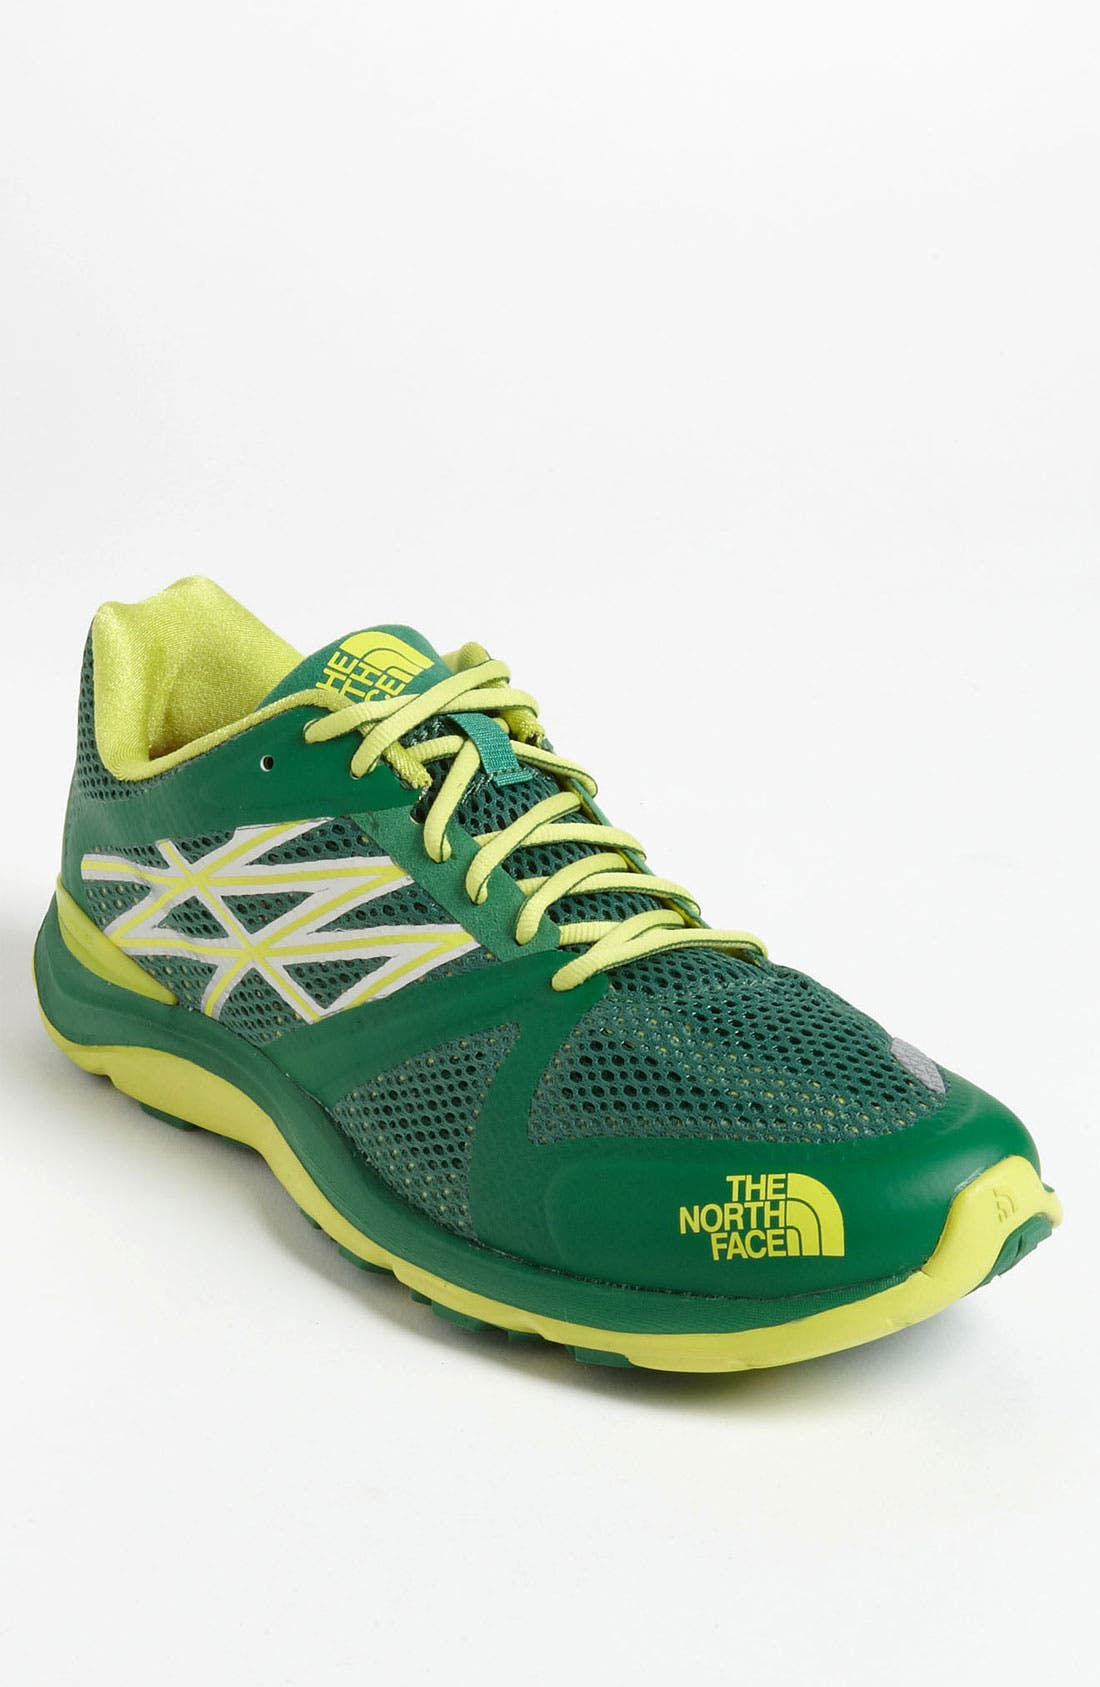 Alternate Image 1 Selected - The North Face 'Hyper-Track Guide' Training Shoe (Men)